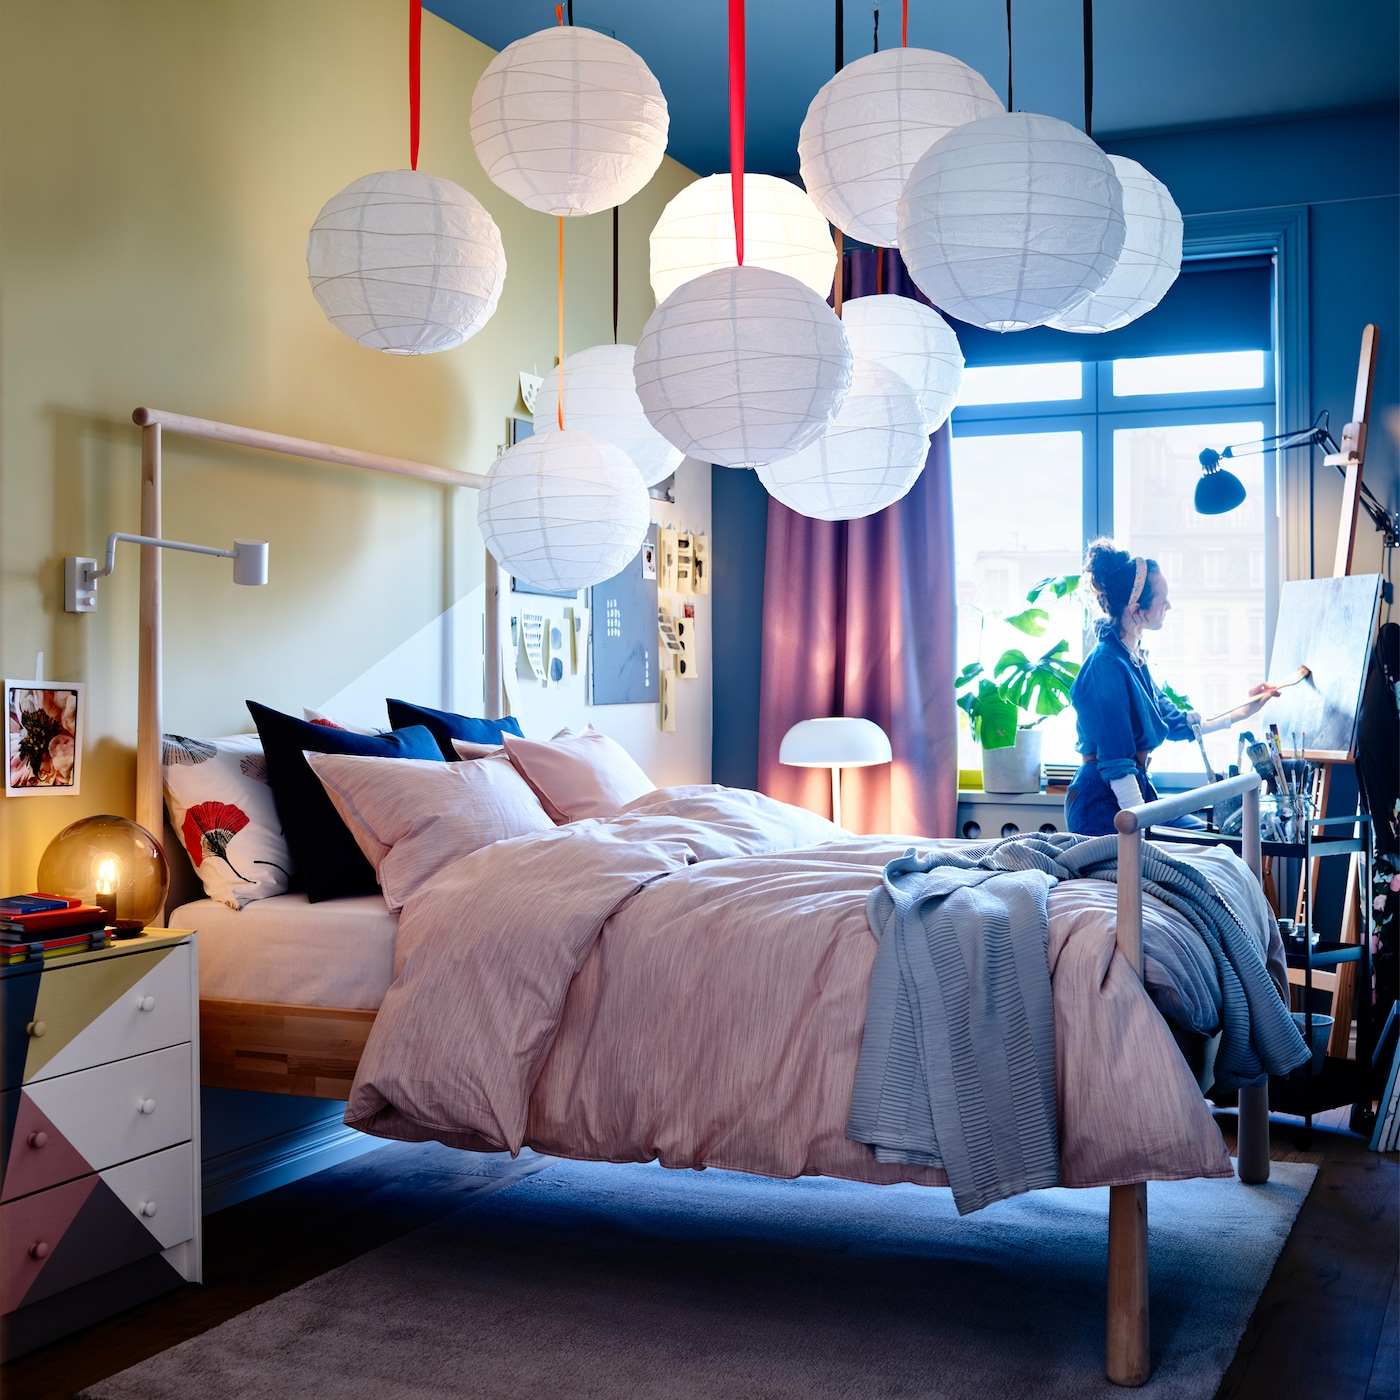 Bedroom furniture inspiration - IKEA